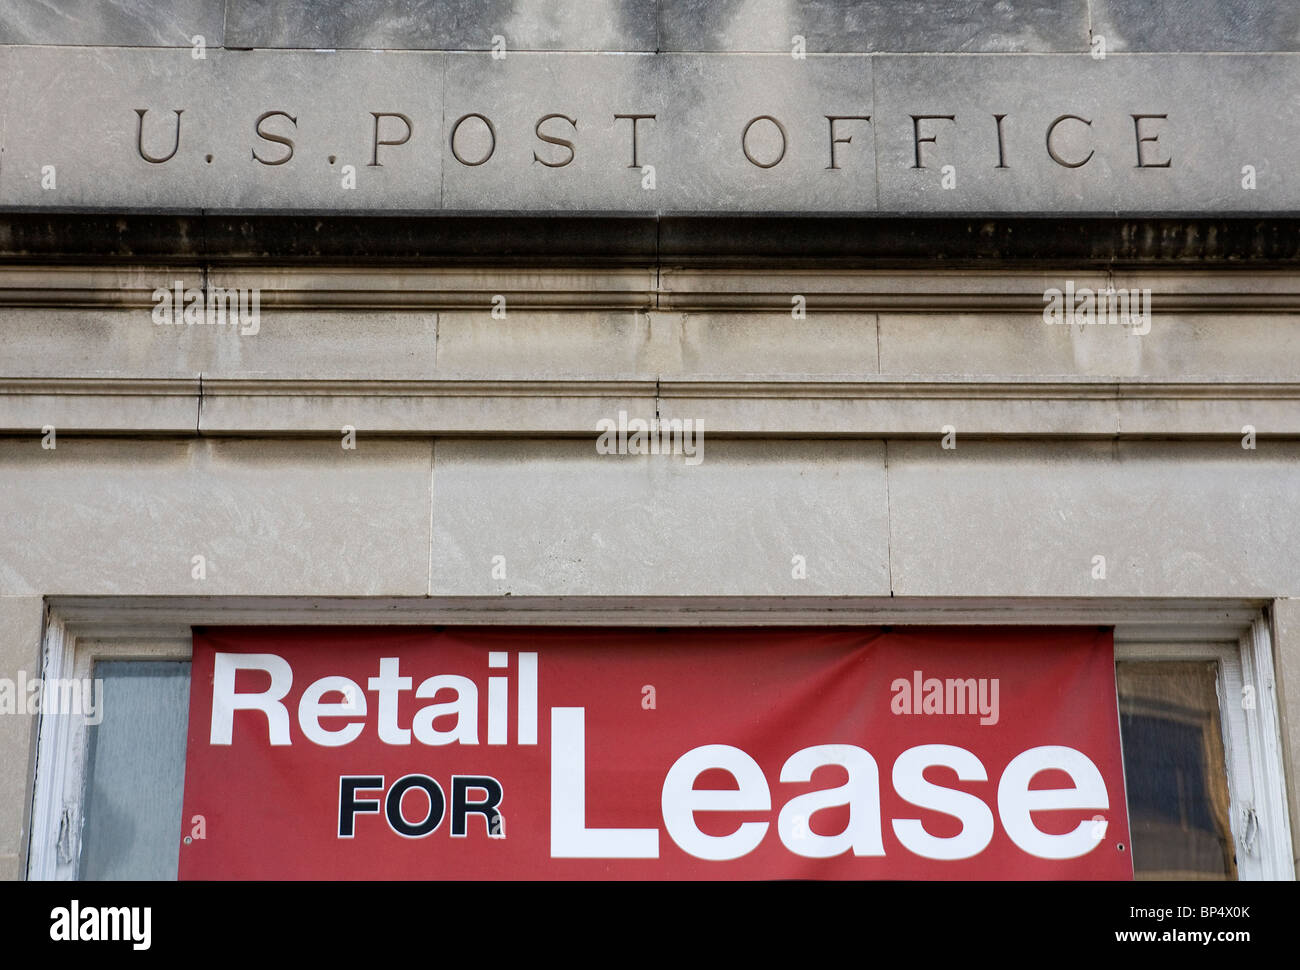 A former United States Post Office location that is for lease.  - Stock Image